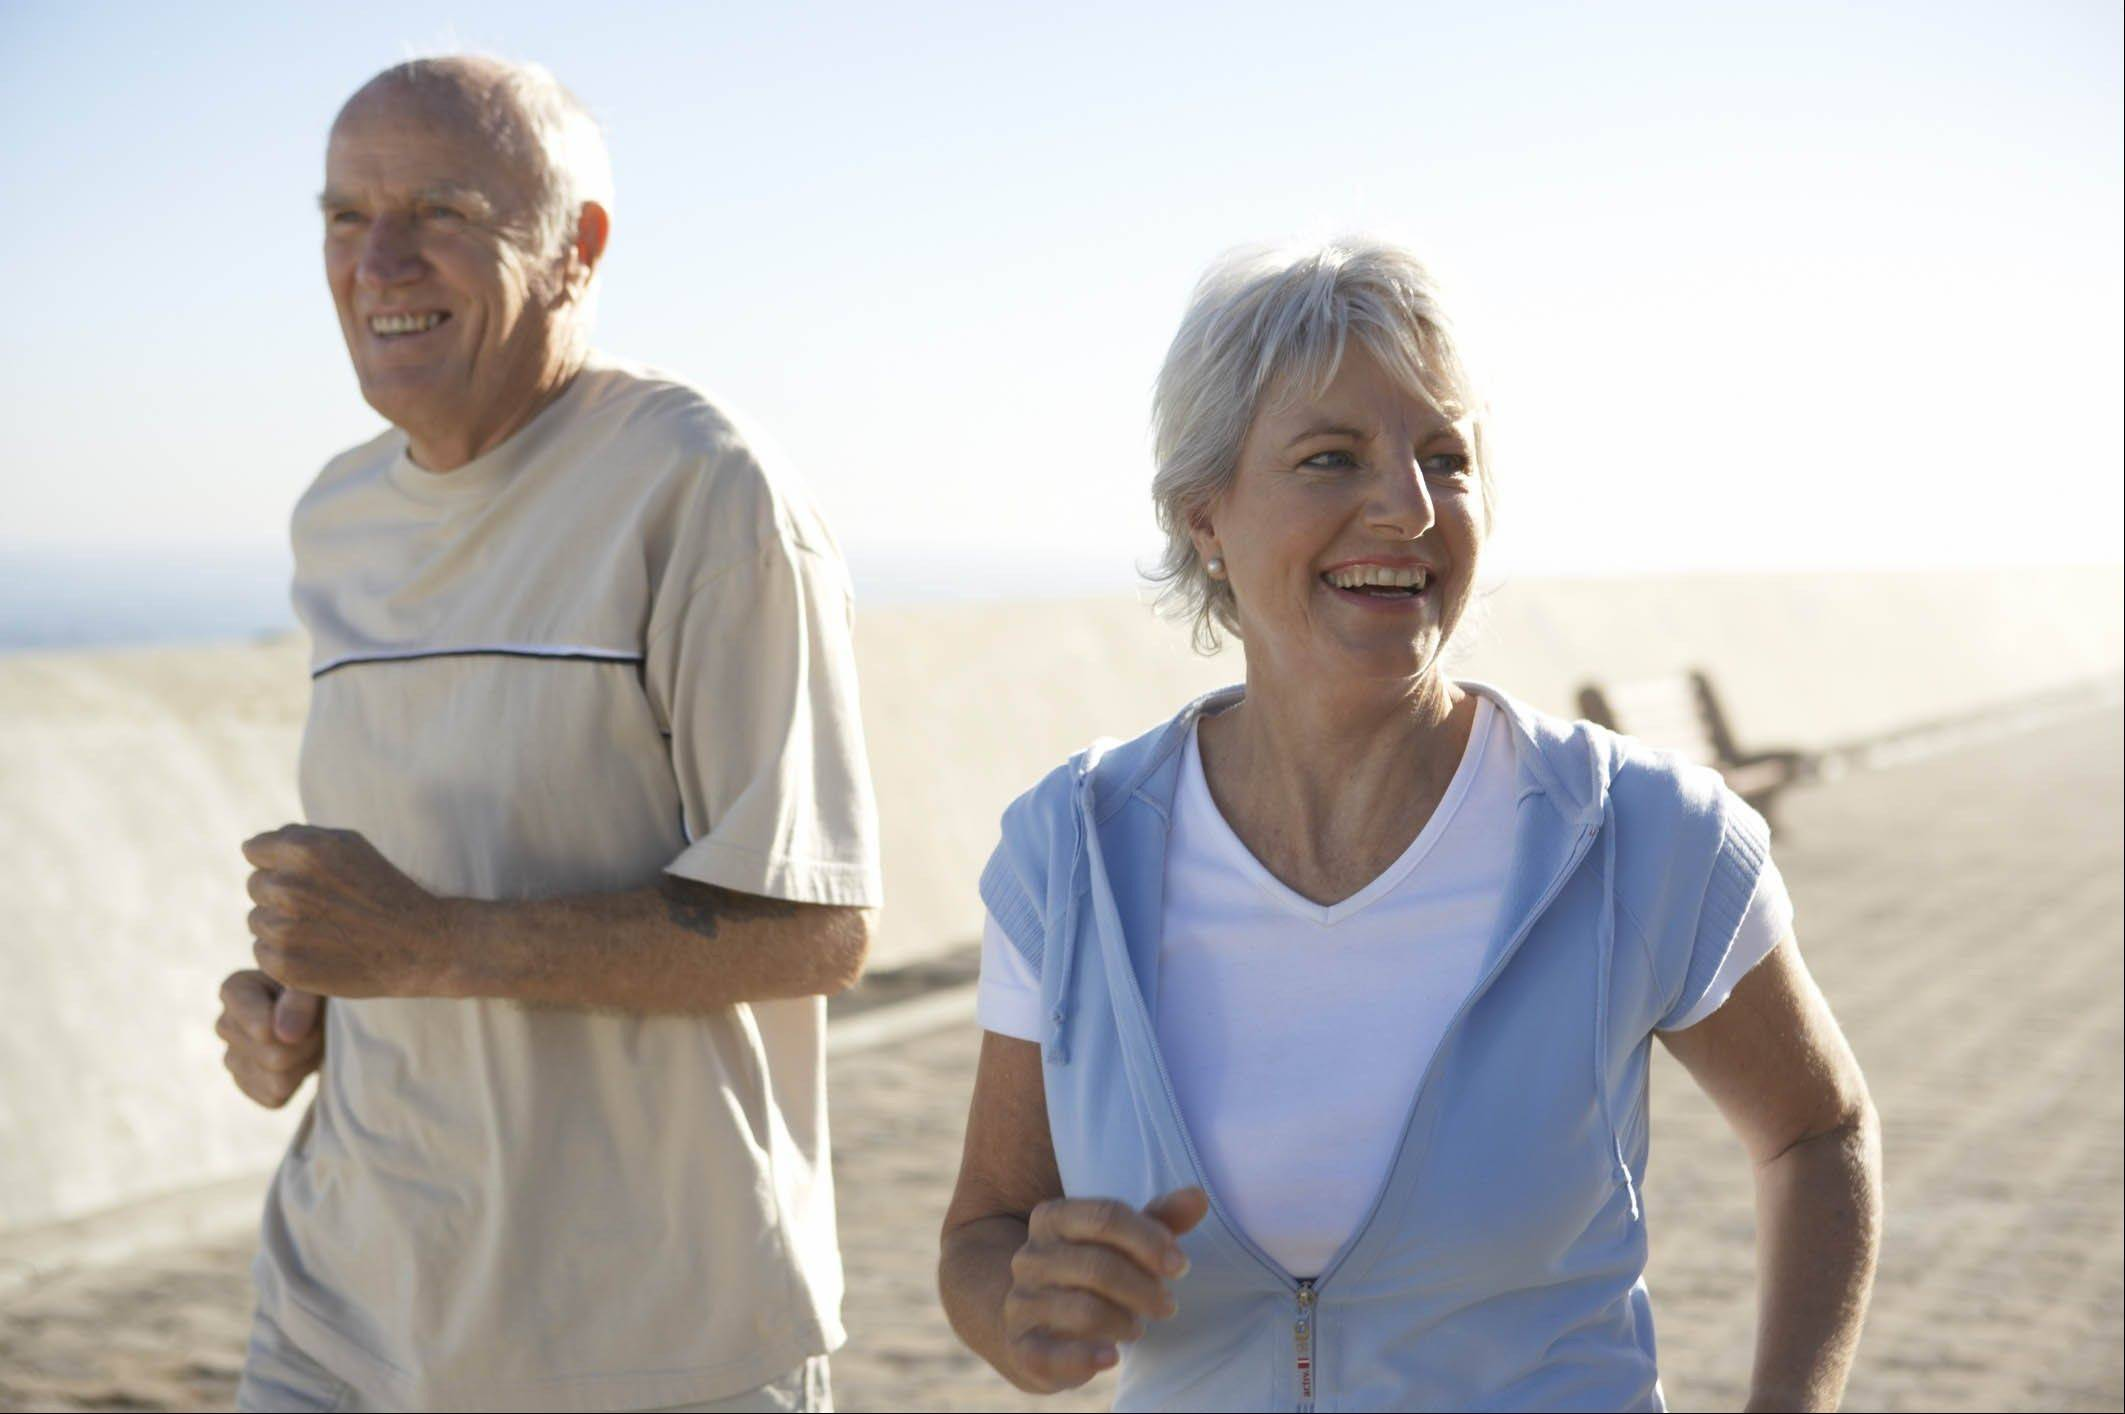 Moderate exercise may reduce the risk of cognitive impairment in older adults, according to researchers.